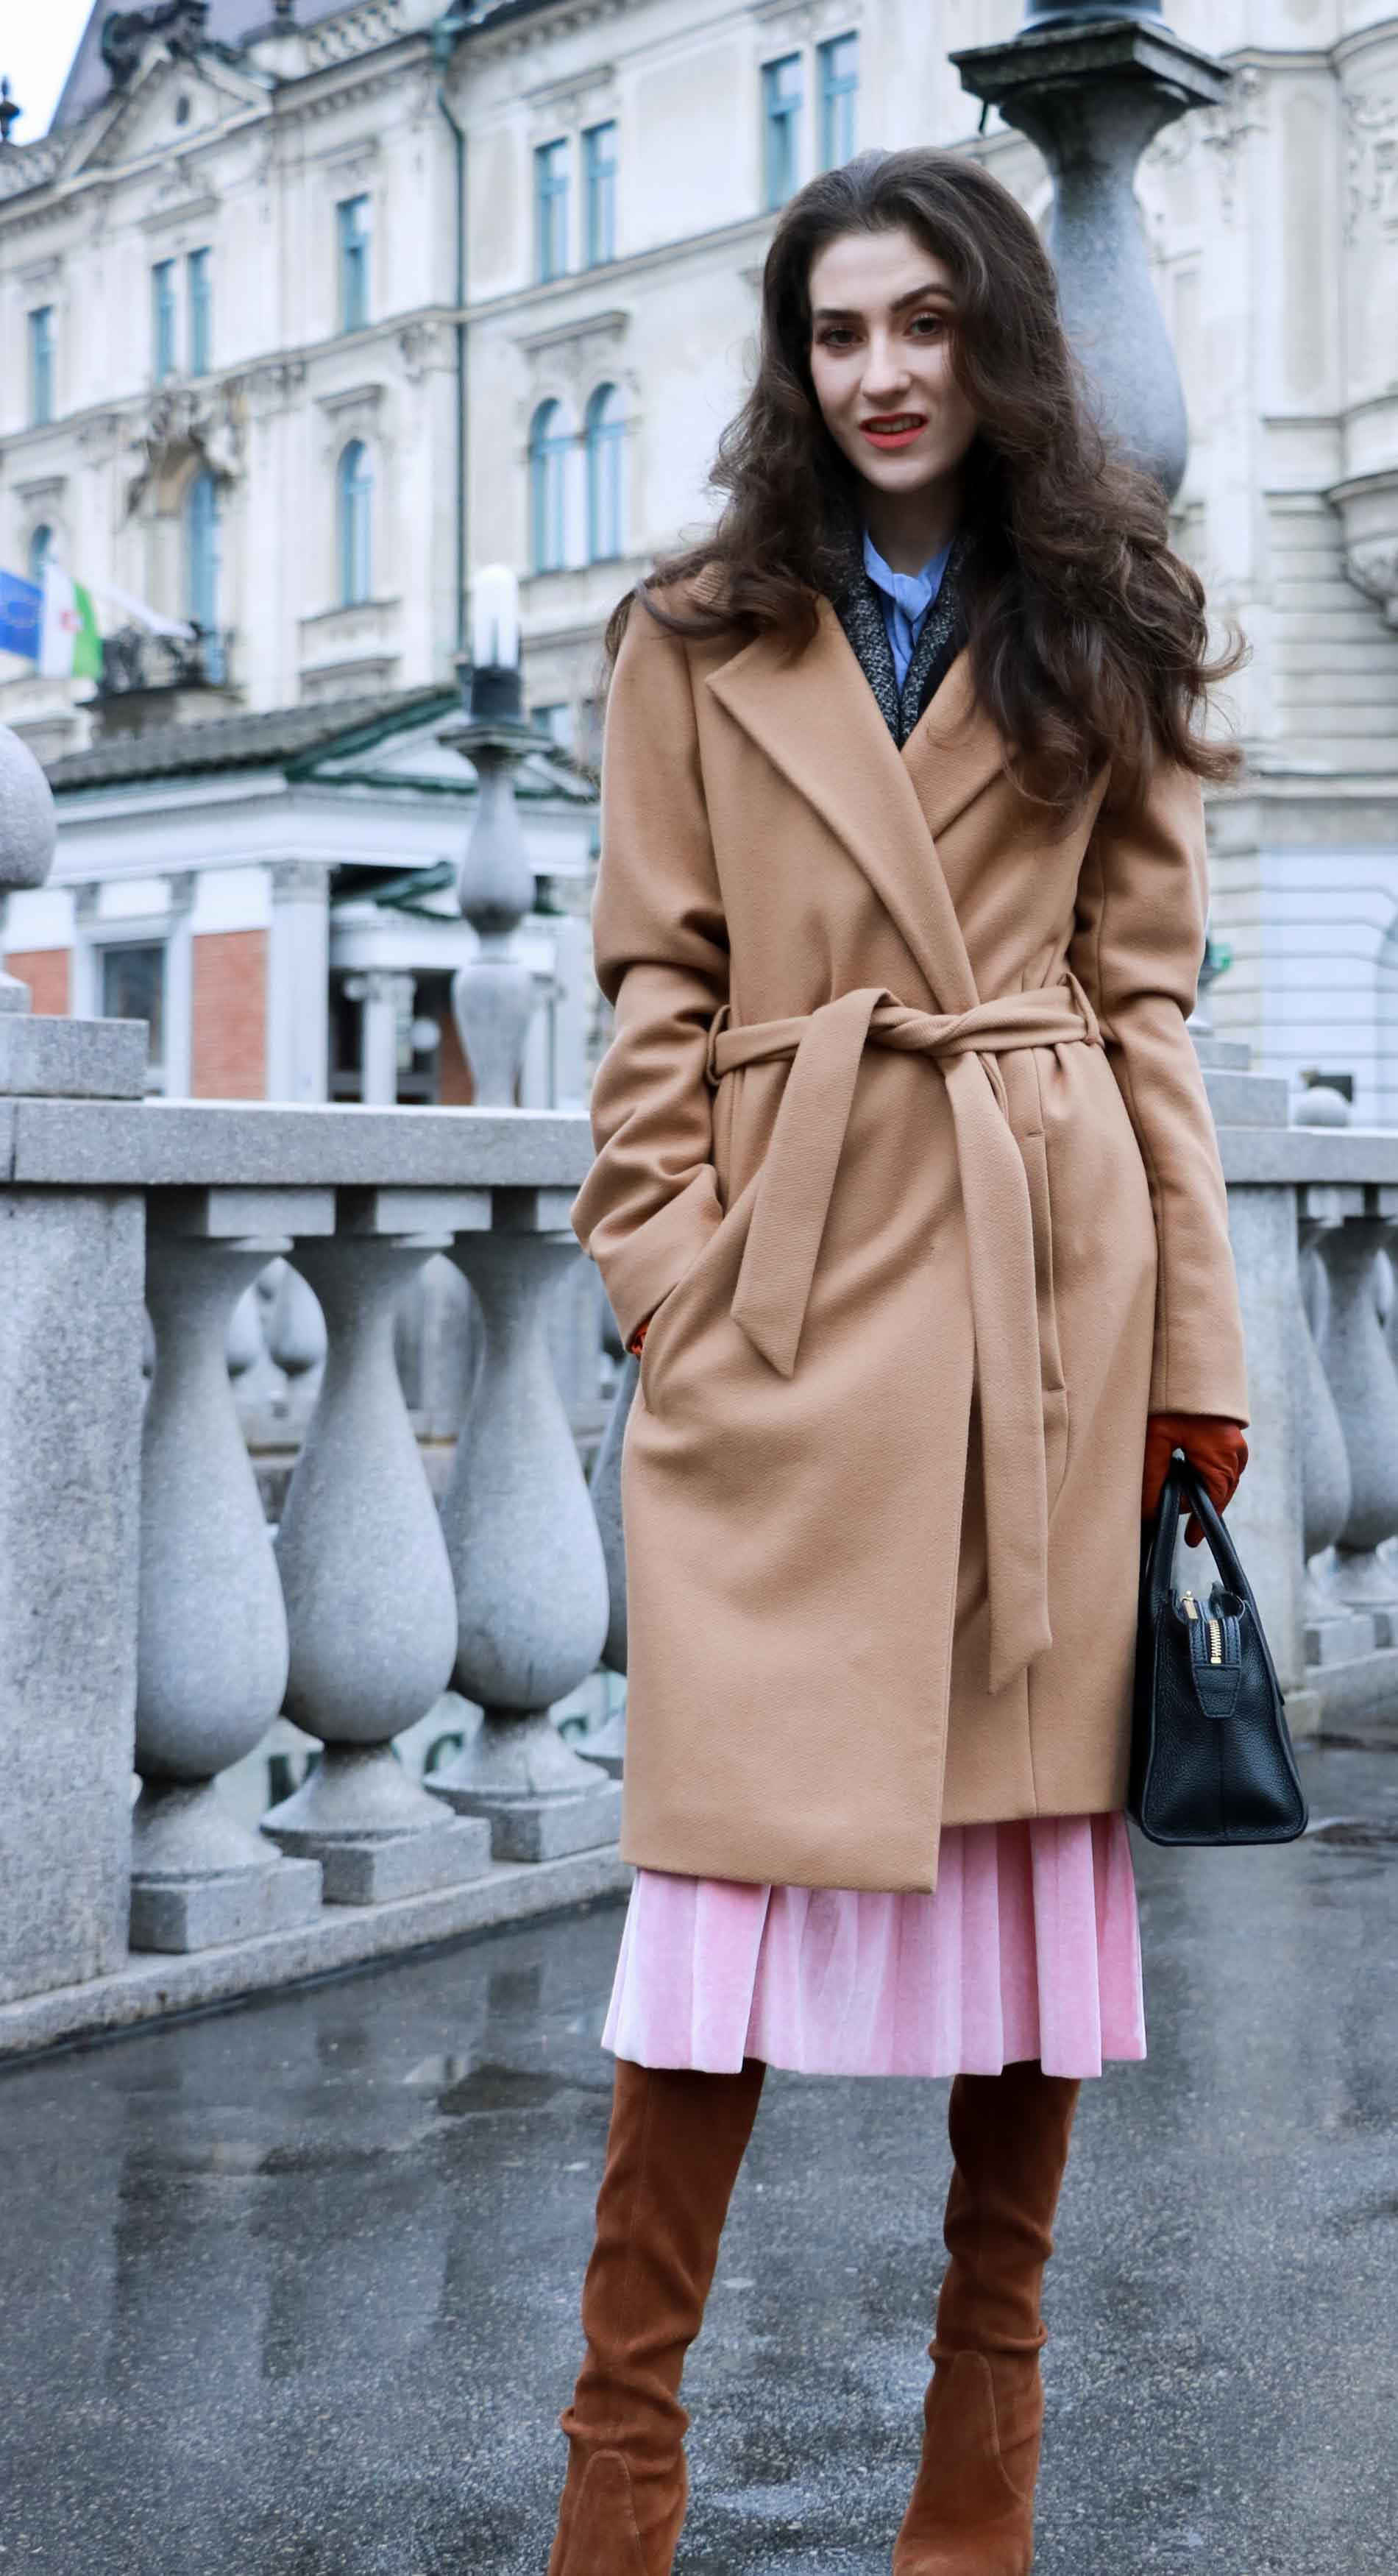 Fashion Blogger Veronika Lipar of Brunette from Wall Street wearing elegant outfit, ESCADA wrap camel coat, pink velvet midi pleated skirt, brown Stuart Weitzman Highland over the knee boots, black top handle bag, leather gloves